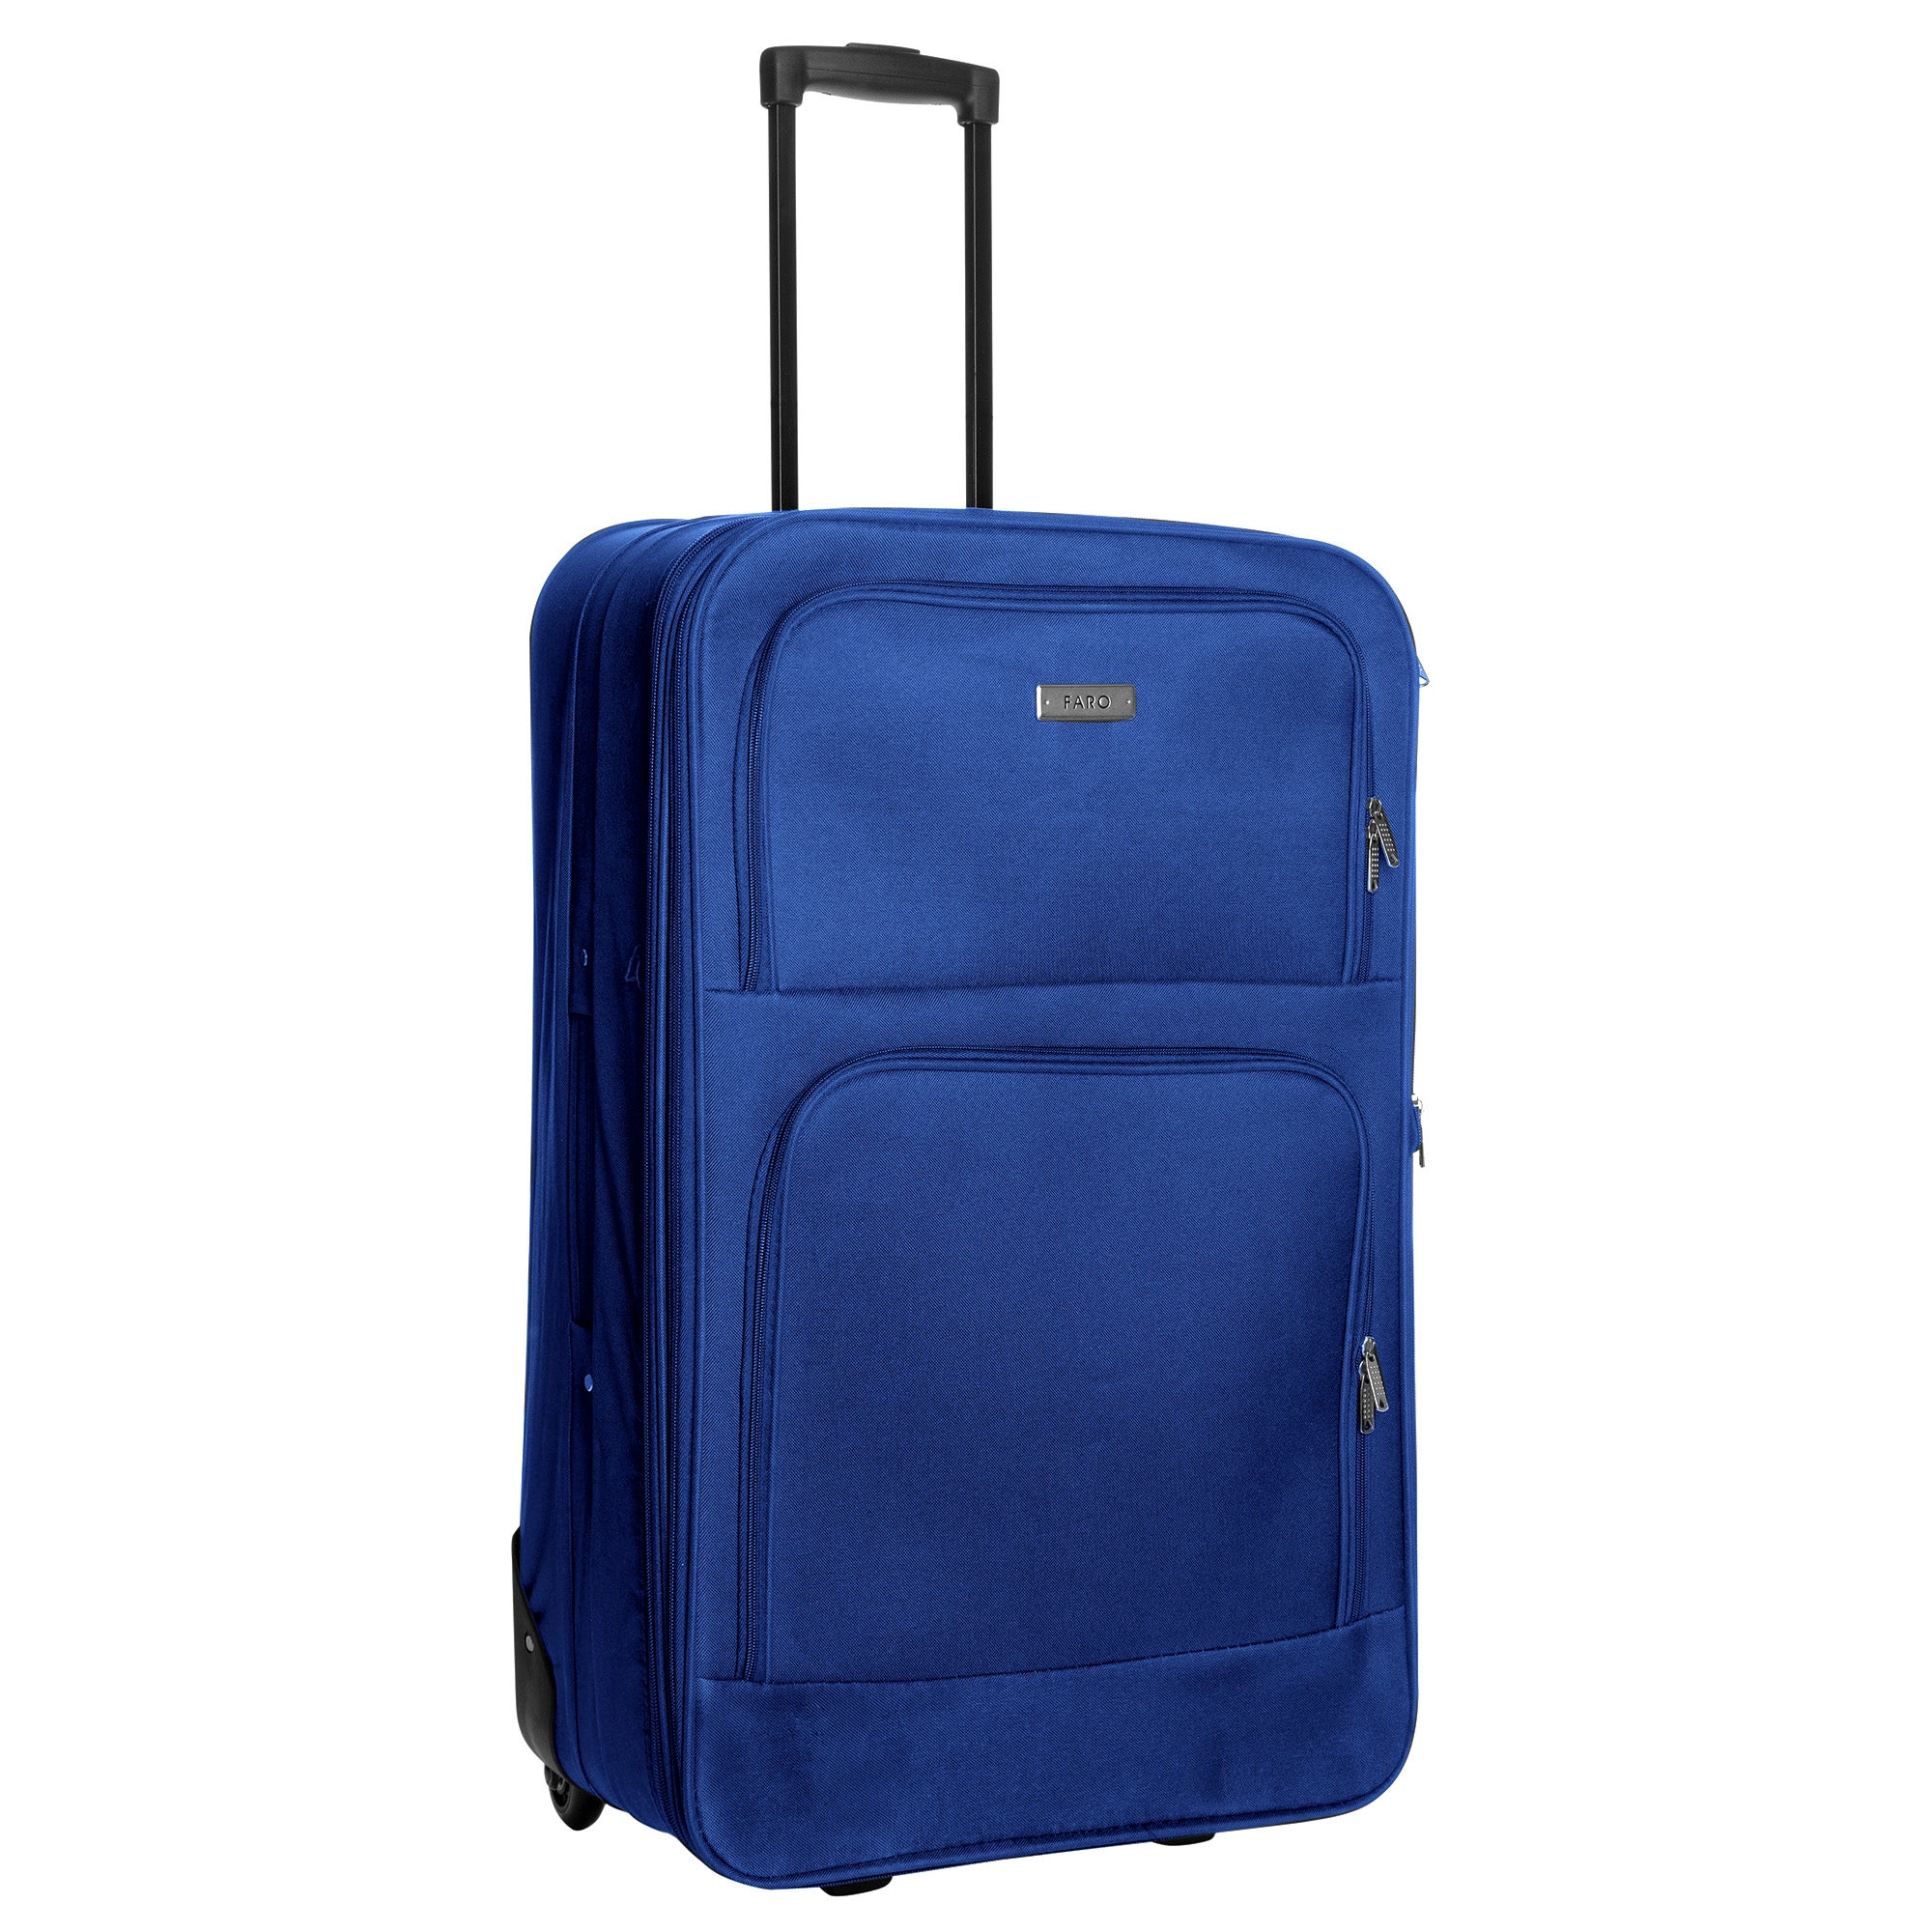 Faro Navy 28 Inch Large Family Luggage Case